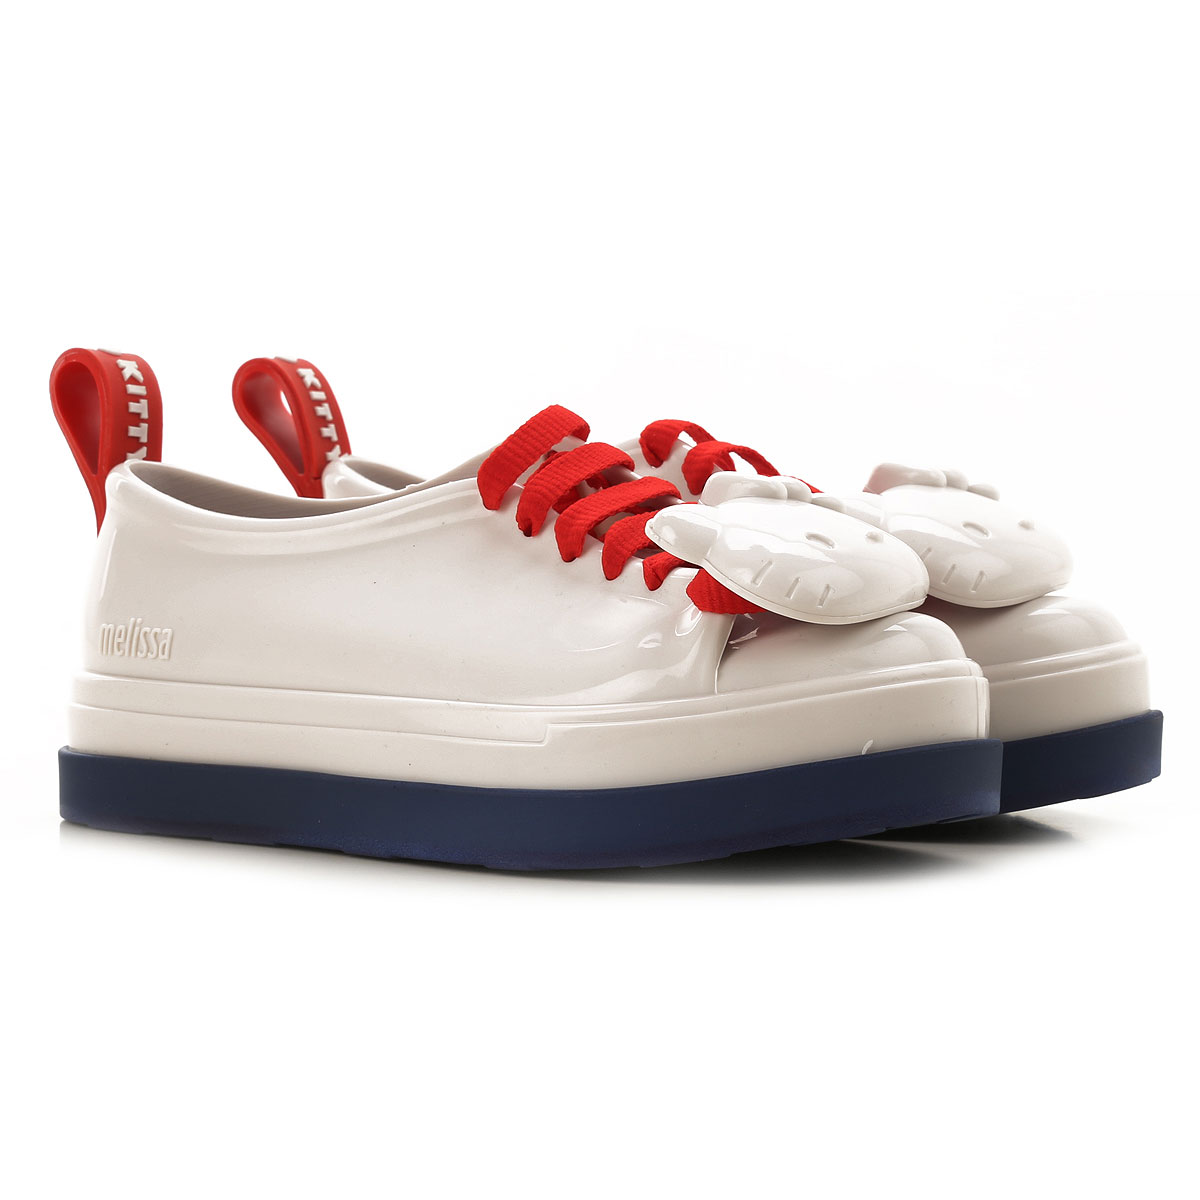 Melissa Kids Shoes for Girls On Sale, White, PVC, 2019, EU 30 - 18.5 CM EU 31 - 19 CM EU 32 - 20 CM EU 33 - 20.5 CM EU 34/35 - 21.5 CM